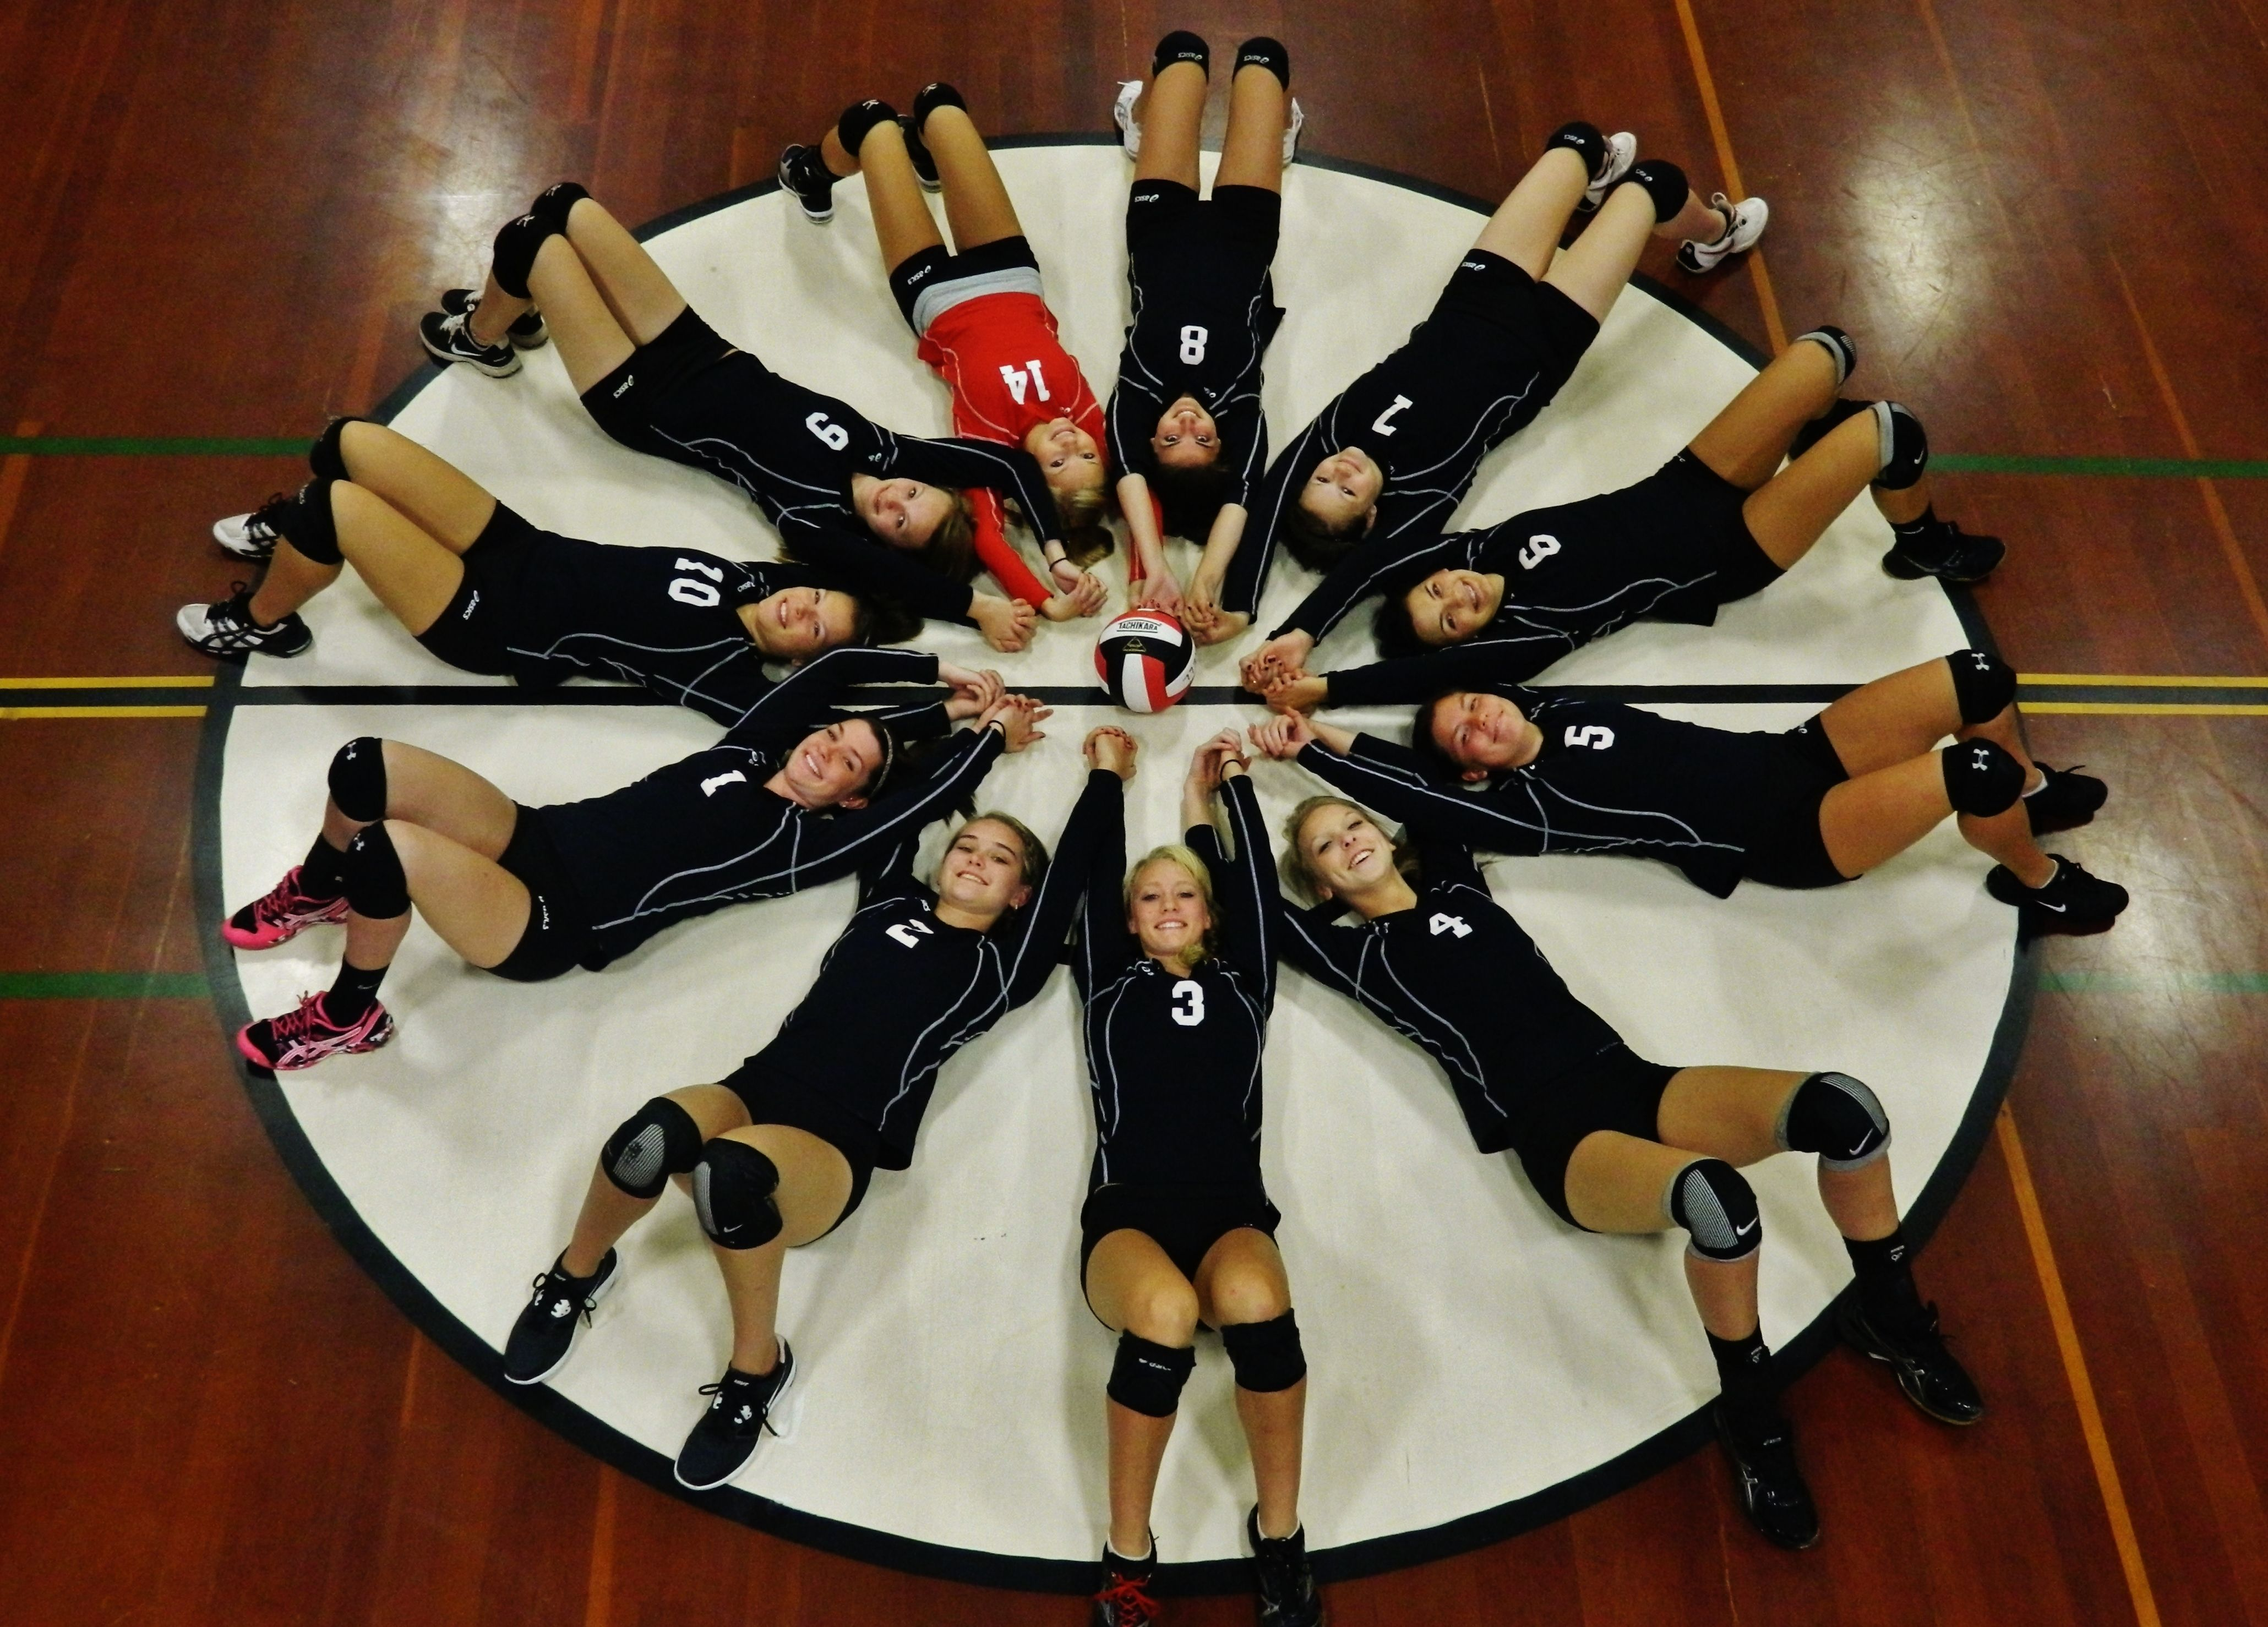 Volleyball Team Picture Pose Ideas Volleyball Pictures